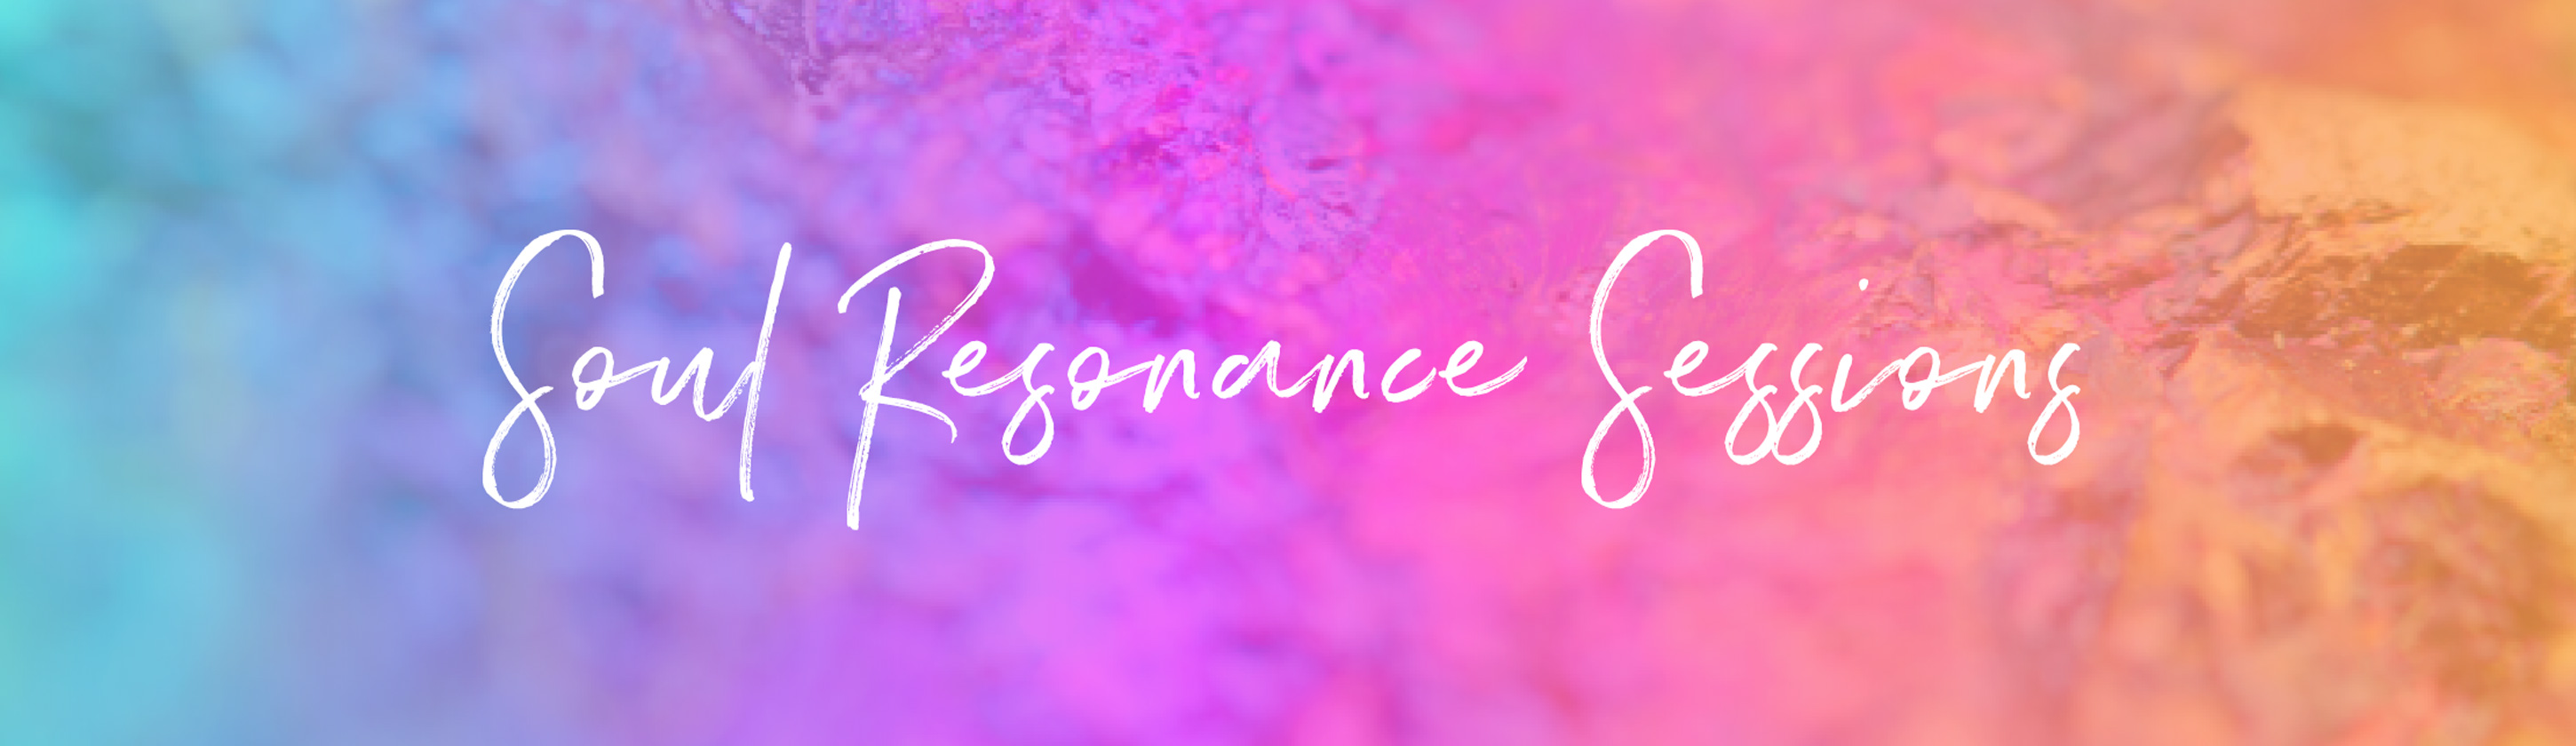 soul-resonance-sessions-banner